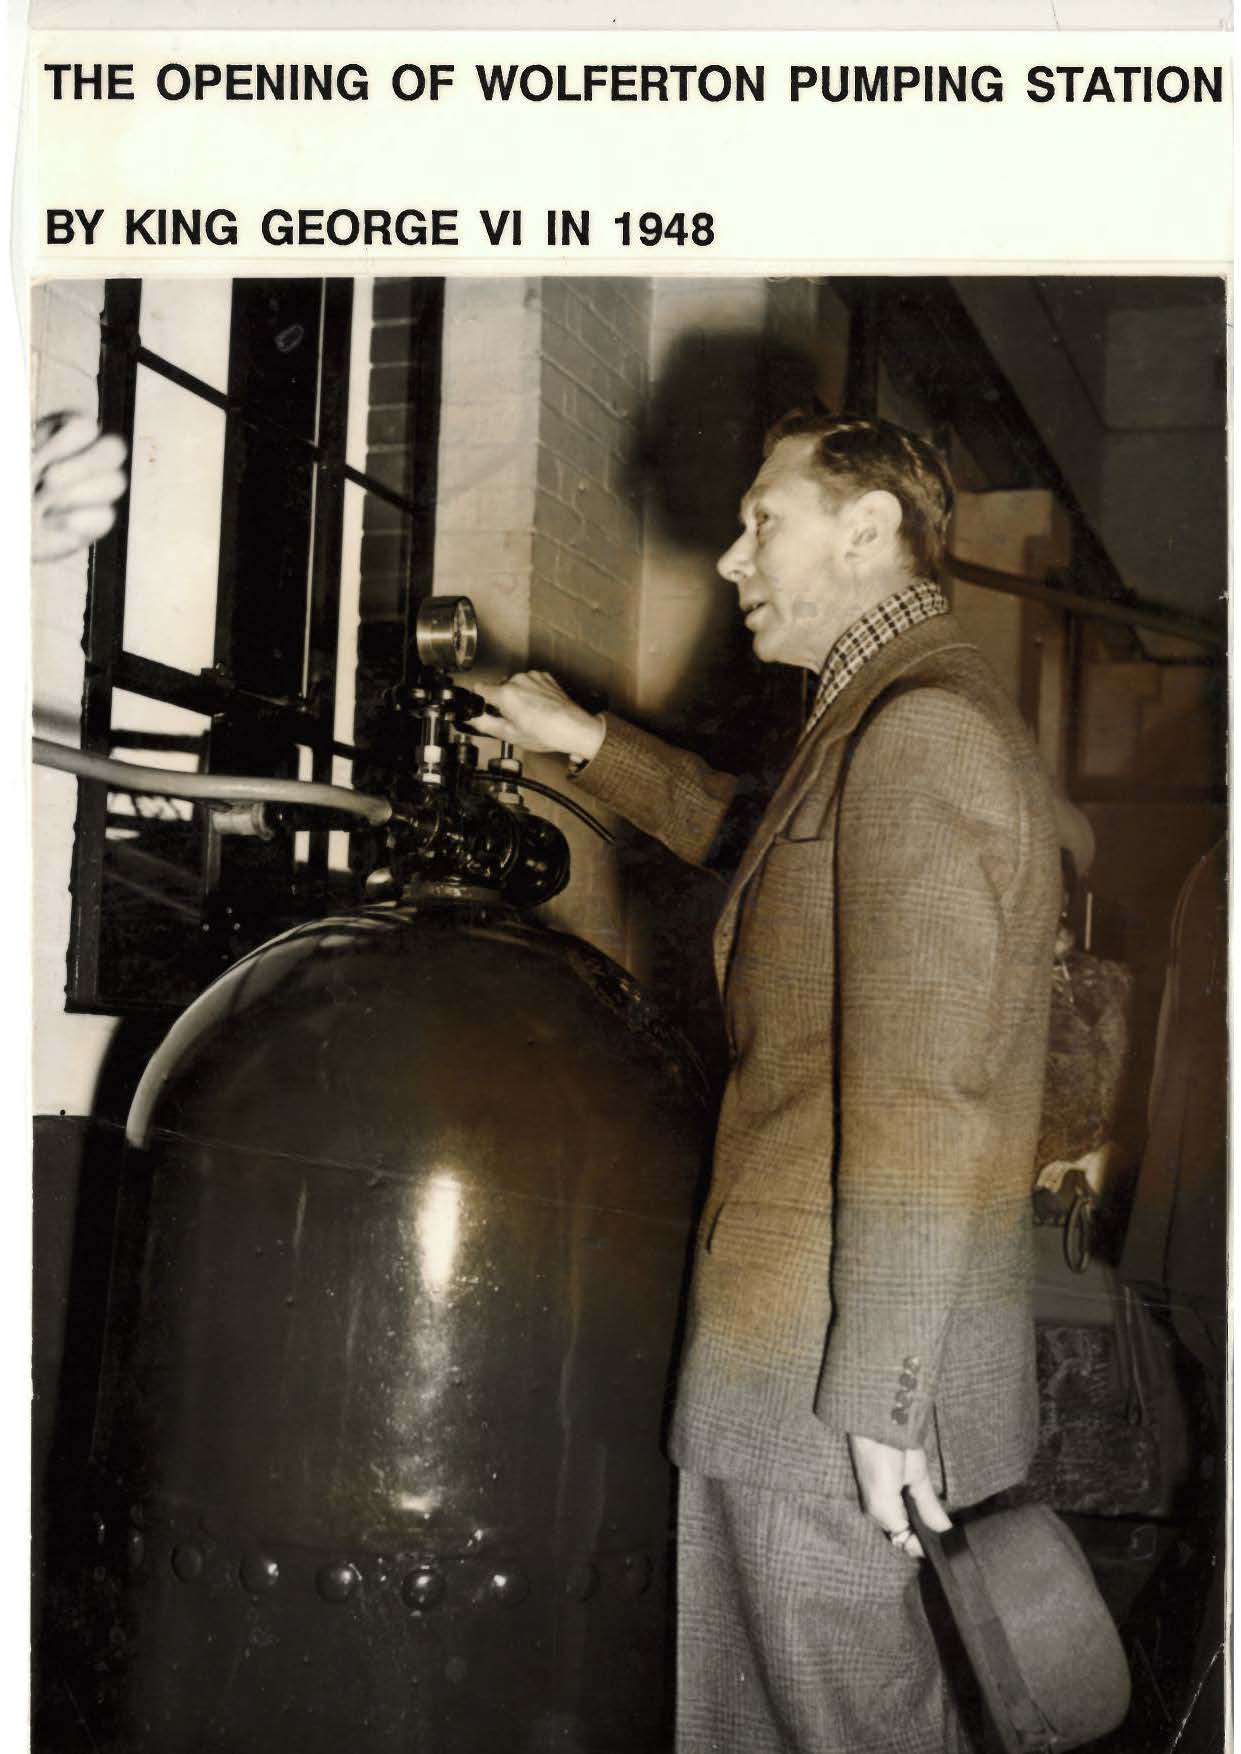 King George VI opens Wolferton Pumping Station, 1948